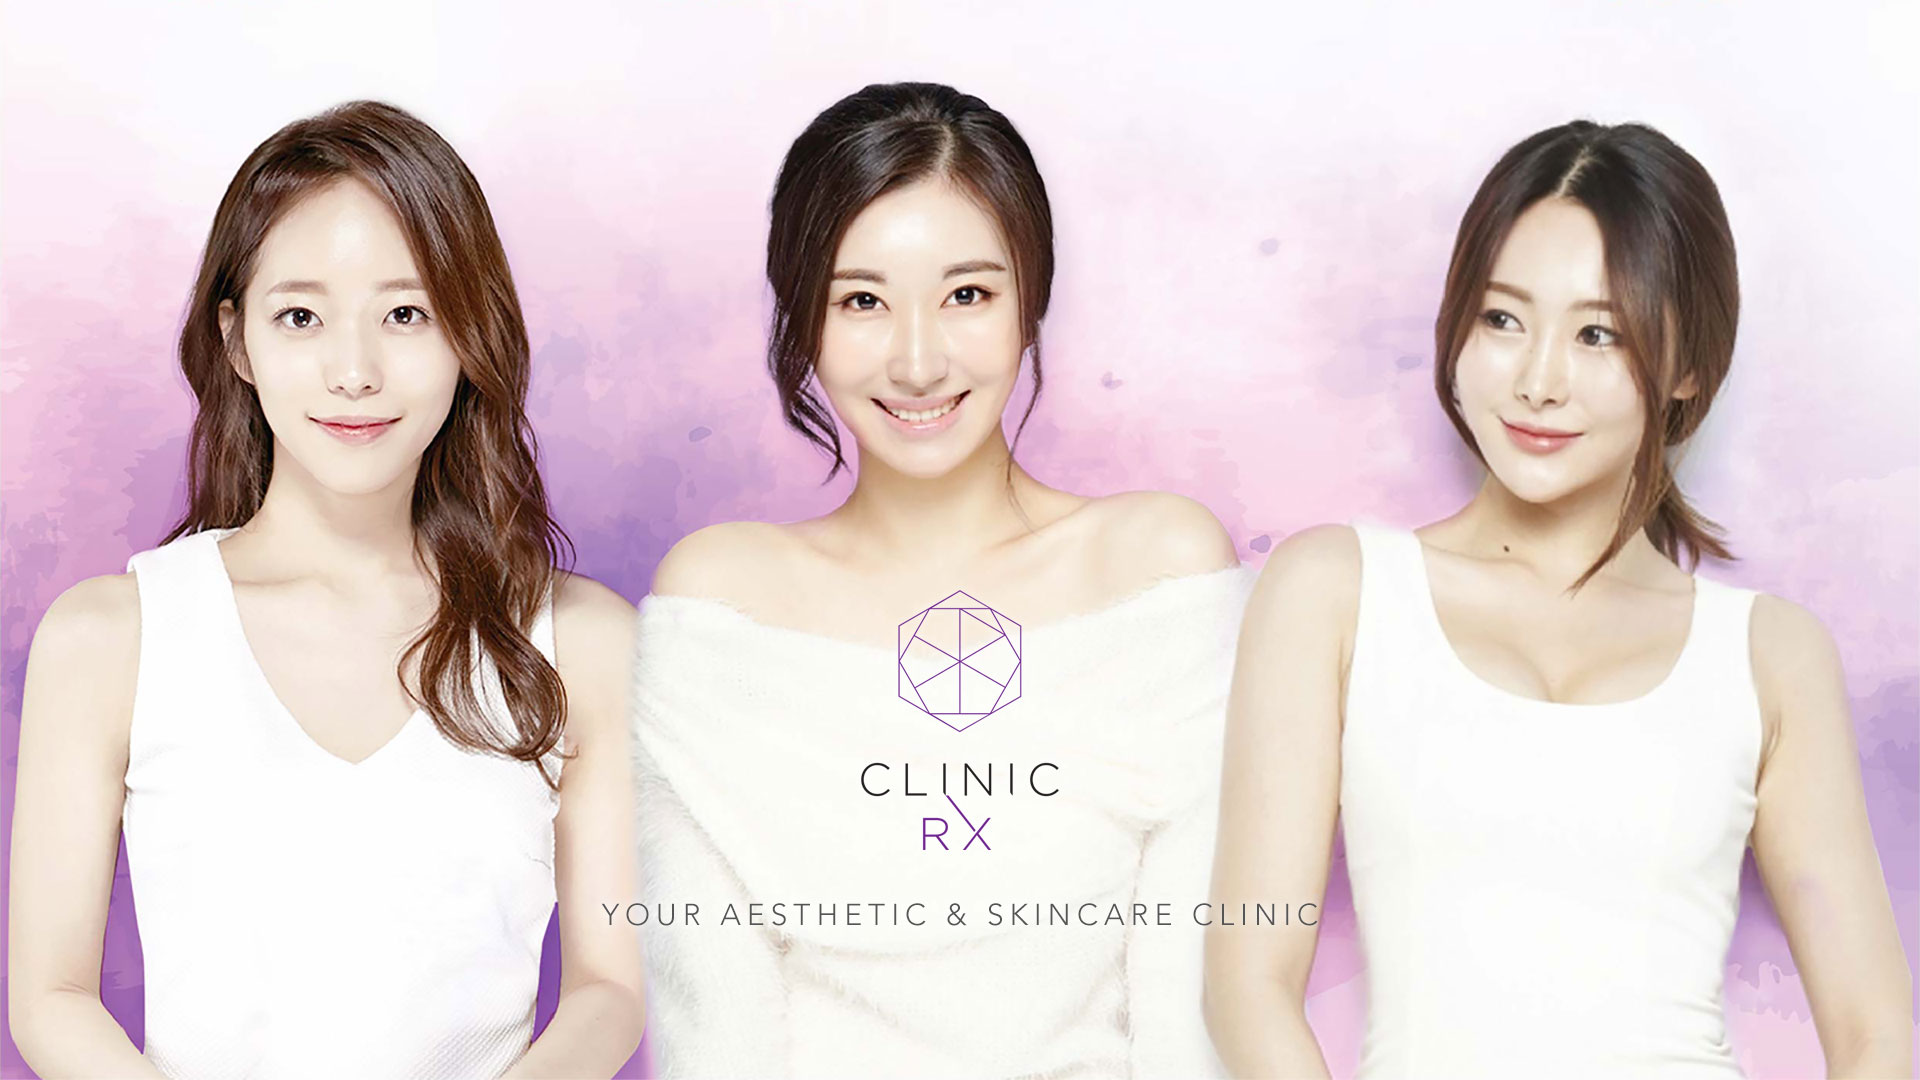 Skin Center Clinic Rx